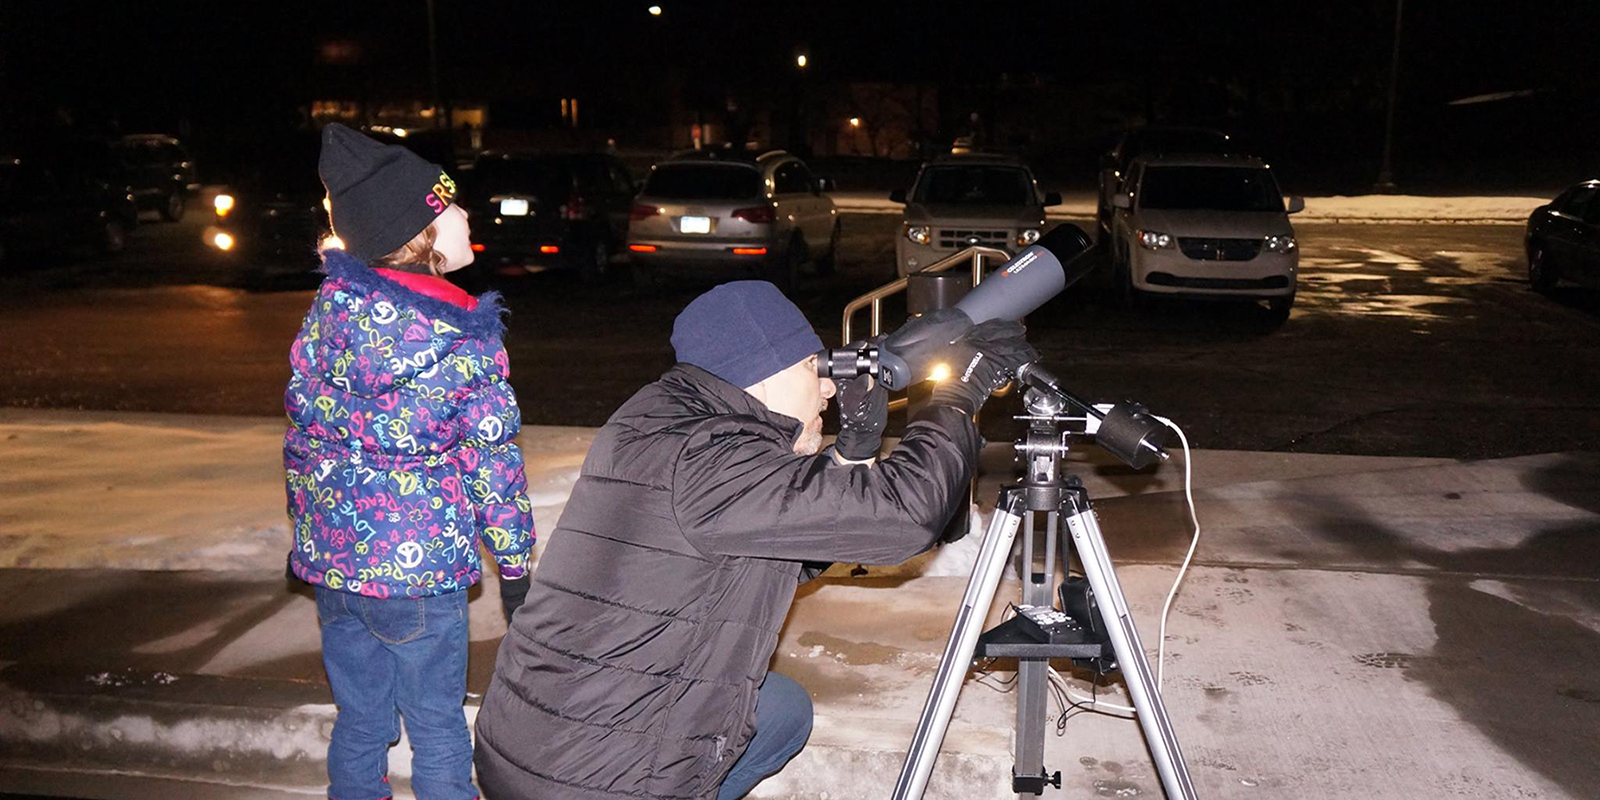 Instructor showing child how to use telescope during evening educational event